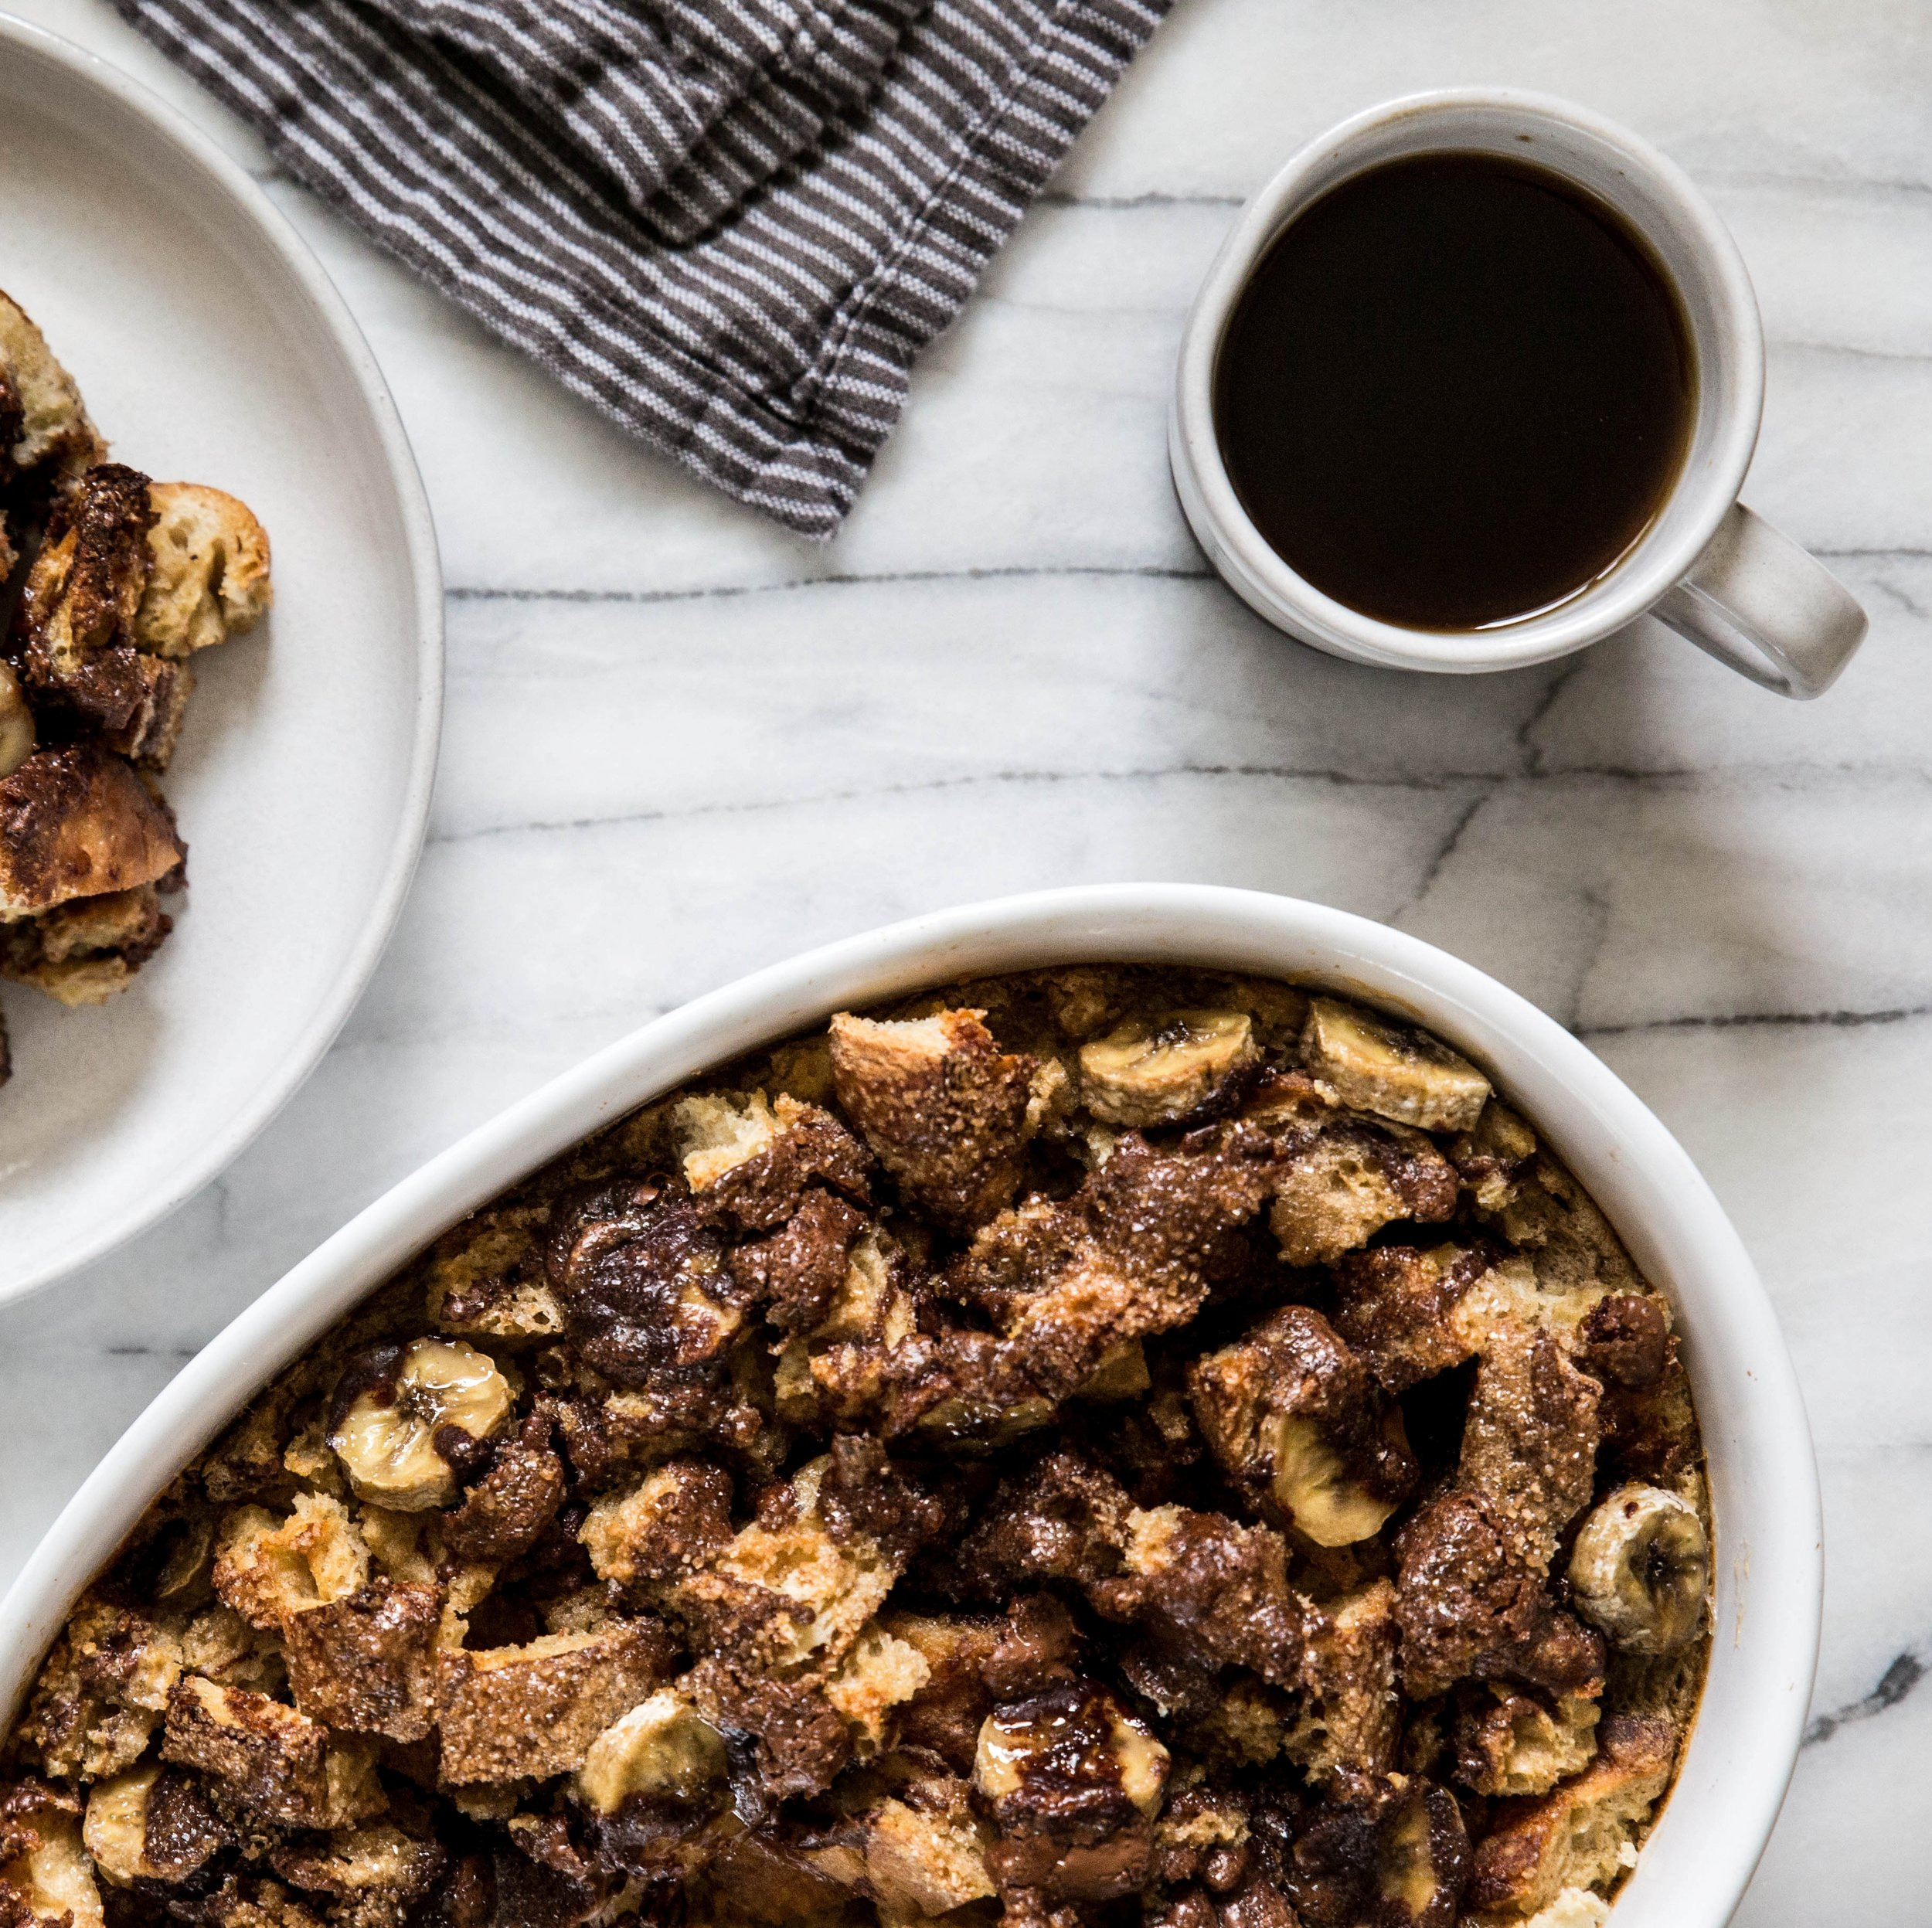 Chocolate Banana Baked French Toast